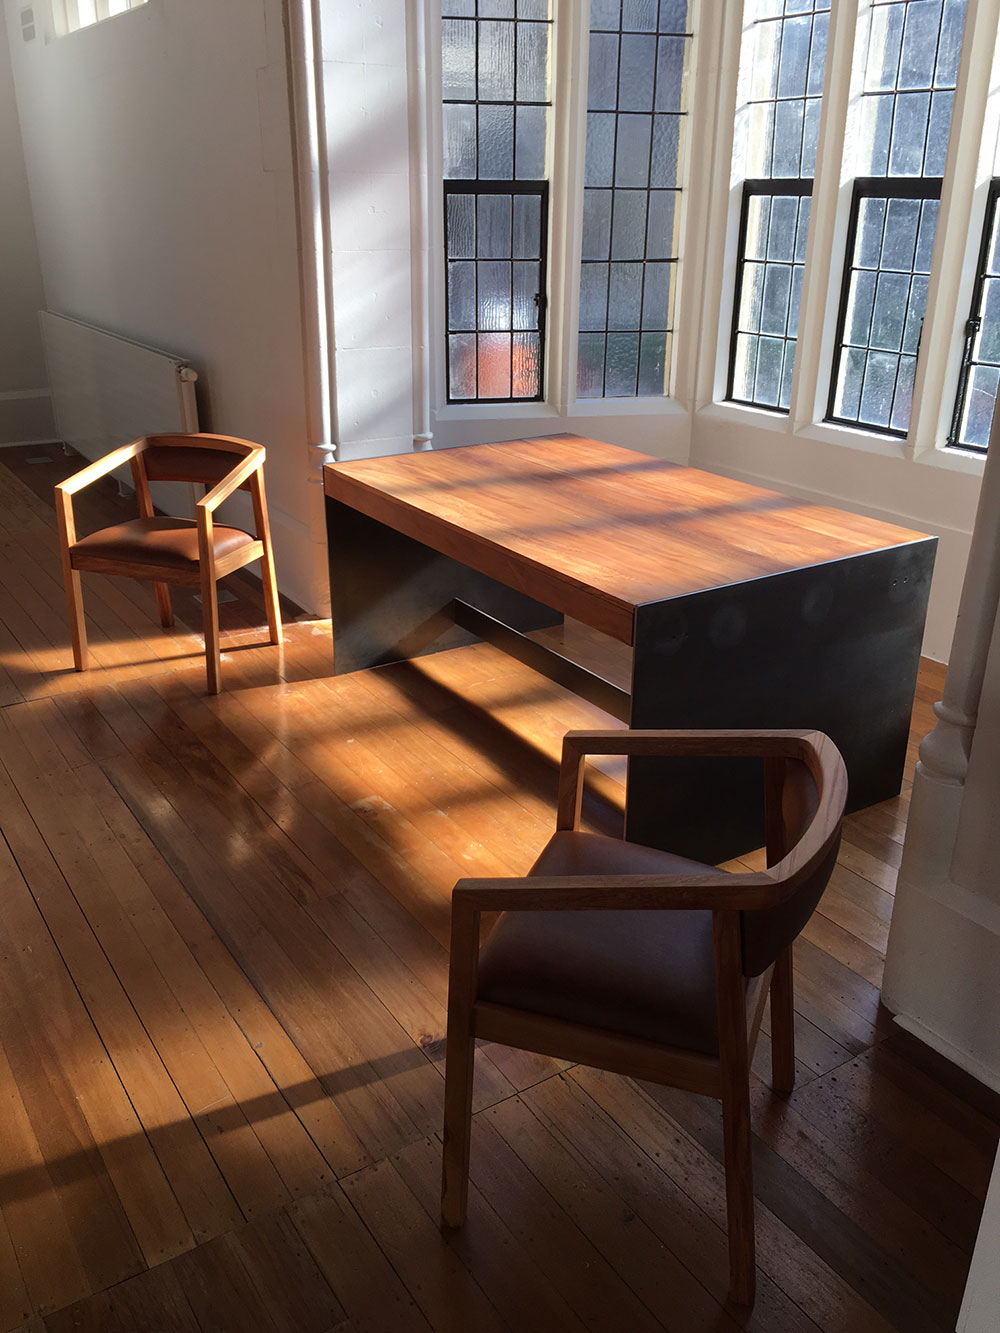 Treology-NZ-Mica-rimu-steel-desk-&-Milford-matai-chairs-for-the-Central-Art-Gallery,-Christchurch.jpg